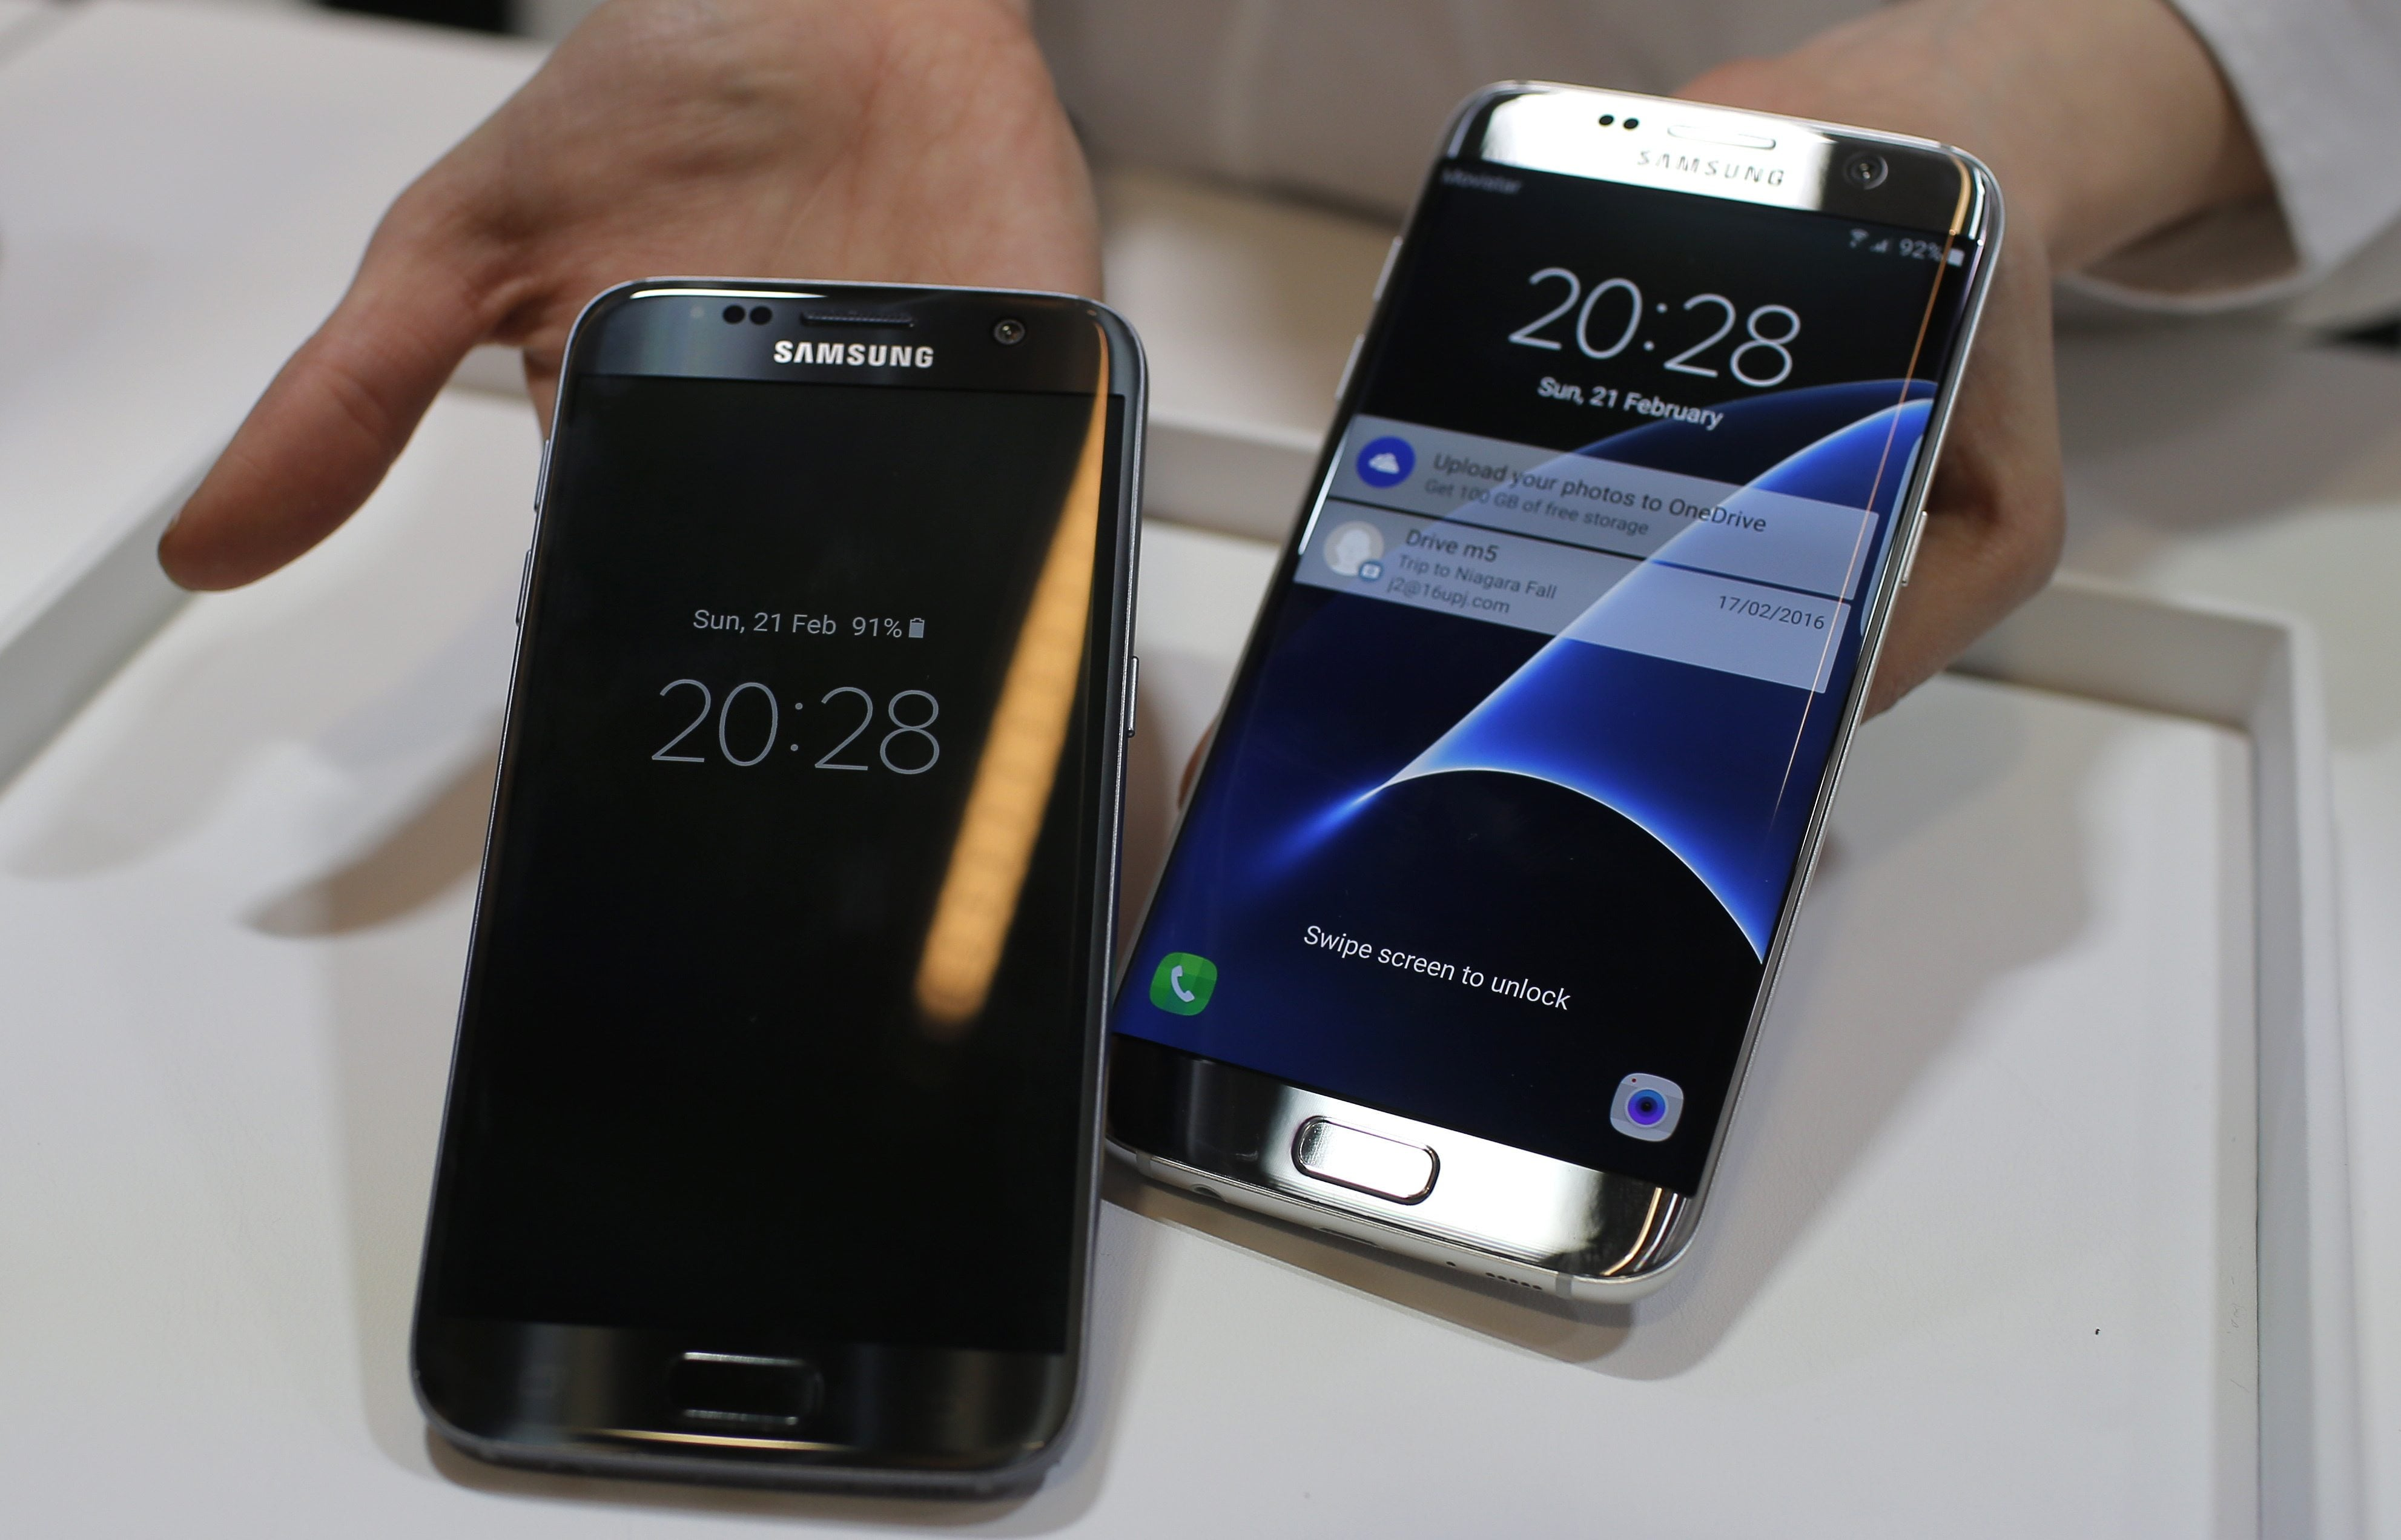 Galaxy S7 preodrers better than Galaxy S6's — Samsung